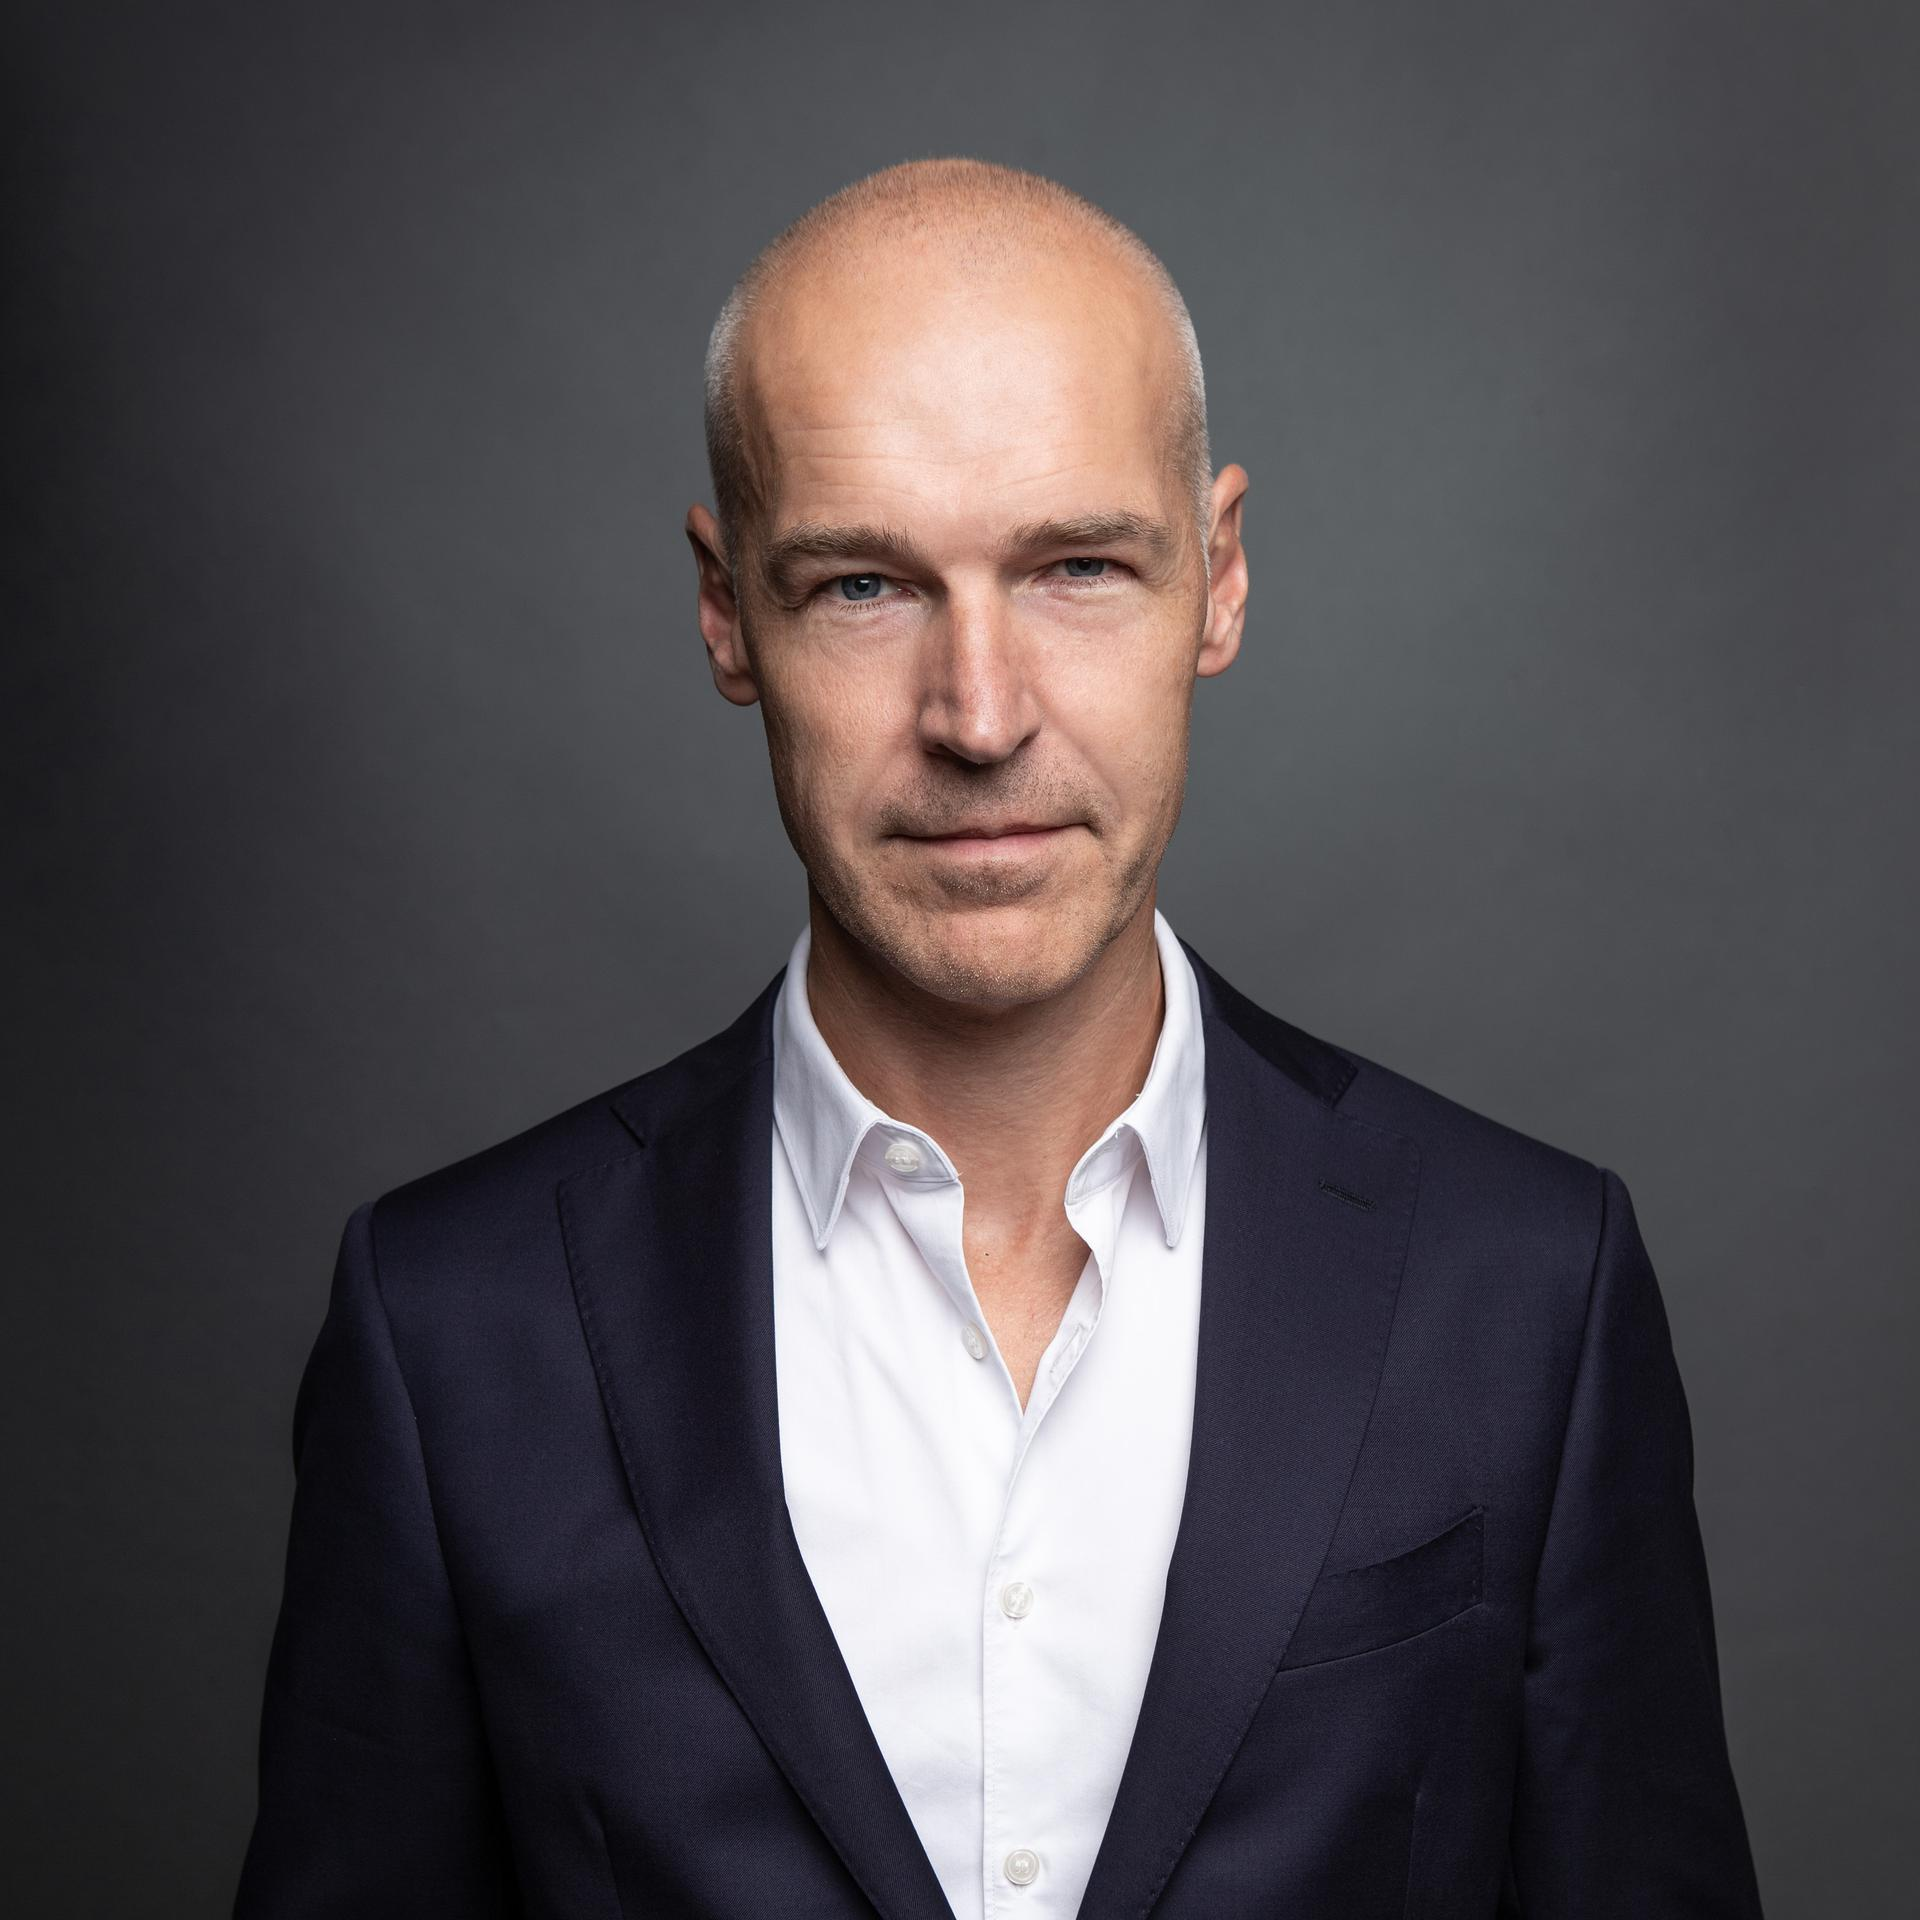 Arjan Pomper appointed as Chief Operating Officer Global Entertainment of ITV Studios